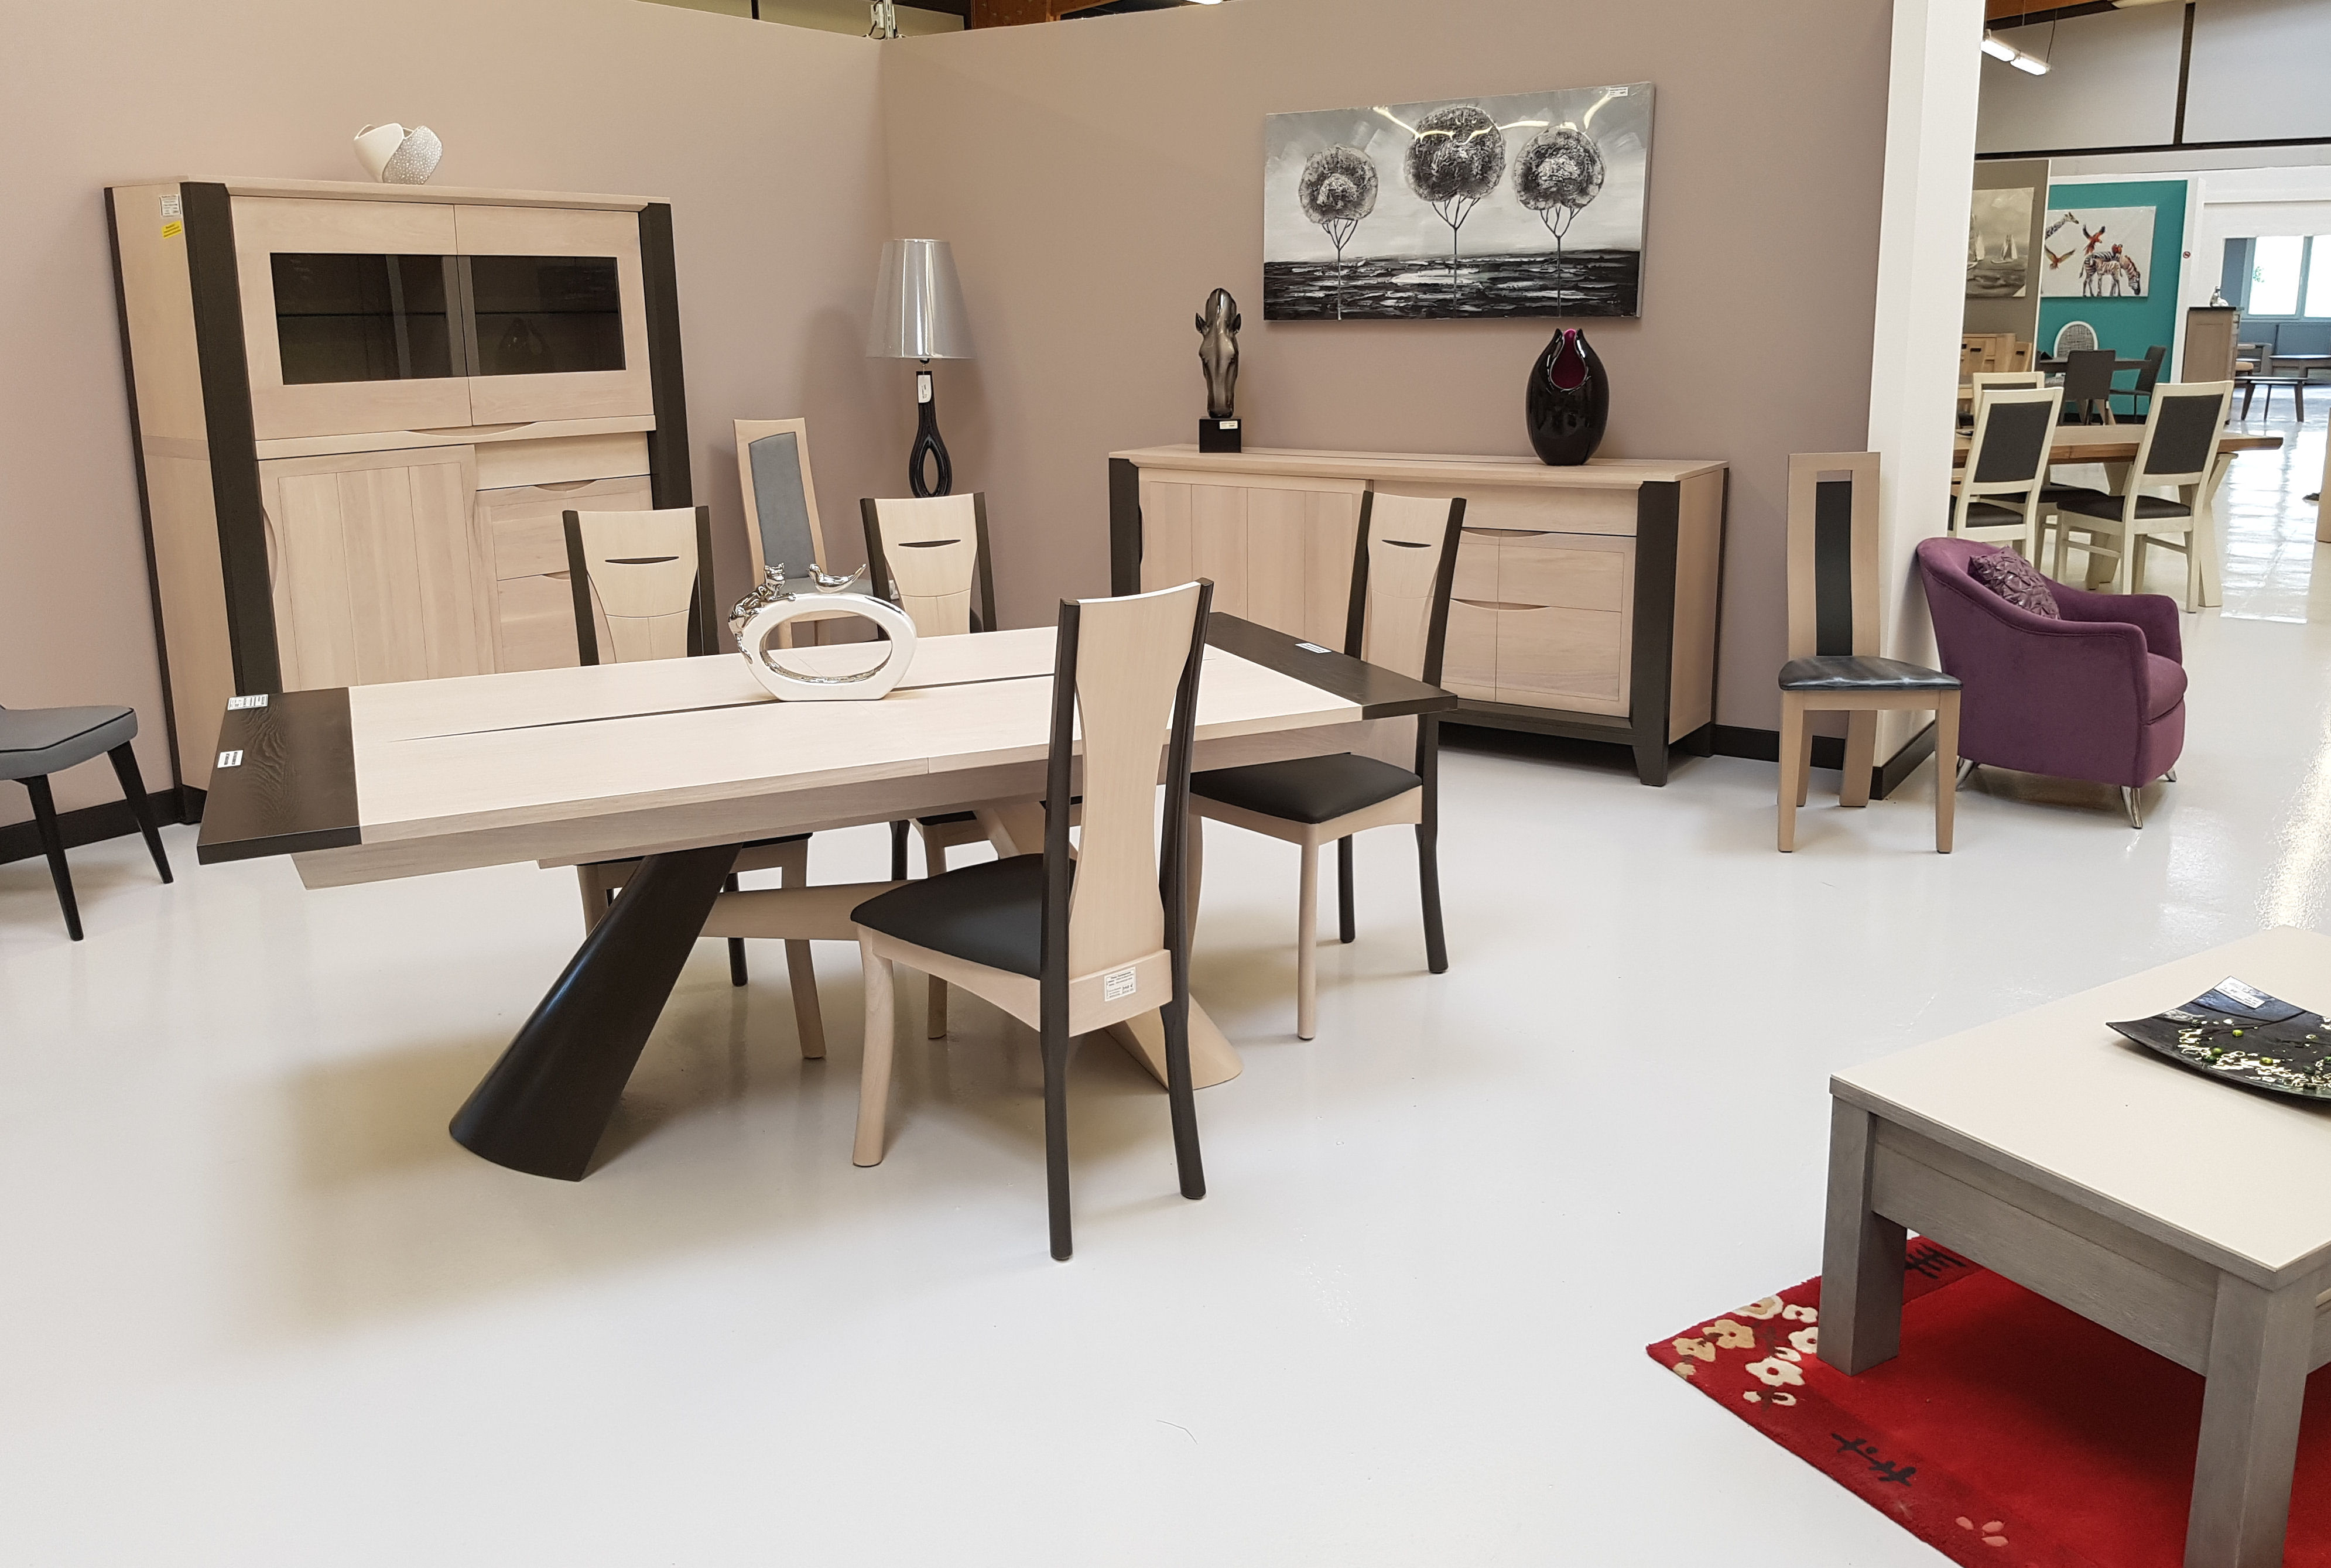 meubles de salle manger cevenne exposition ville en. Black Bedroom Furniture Sets. Home Design Ideas